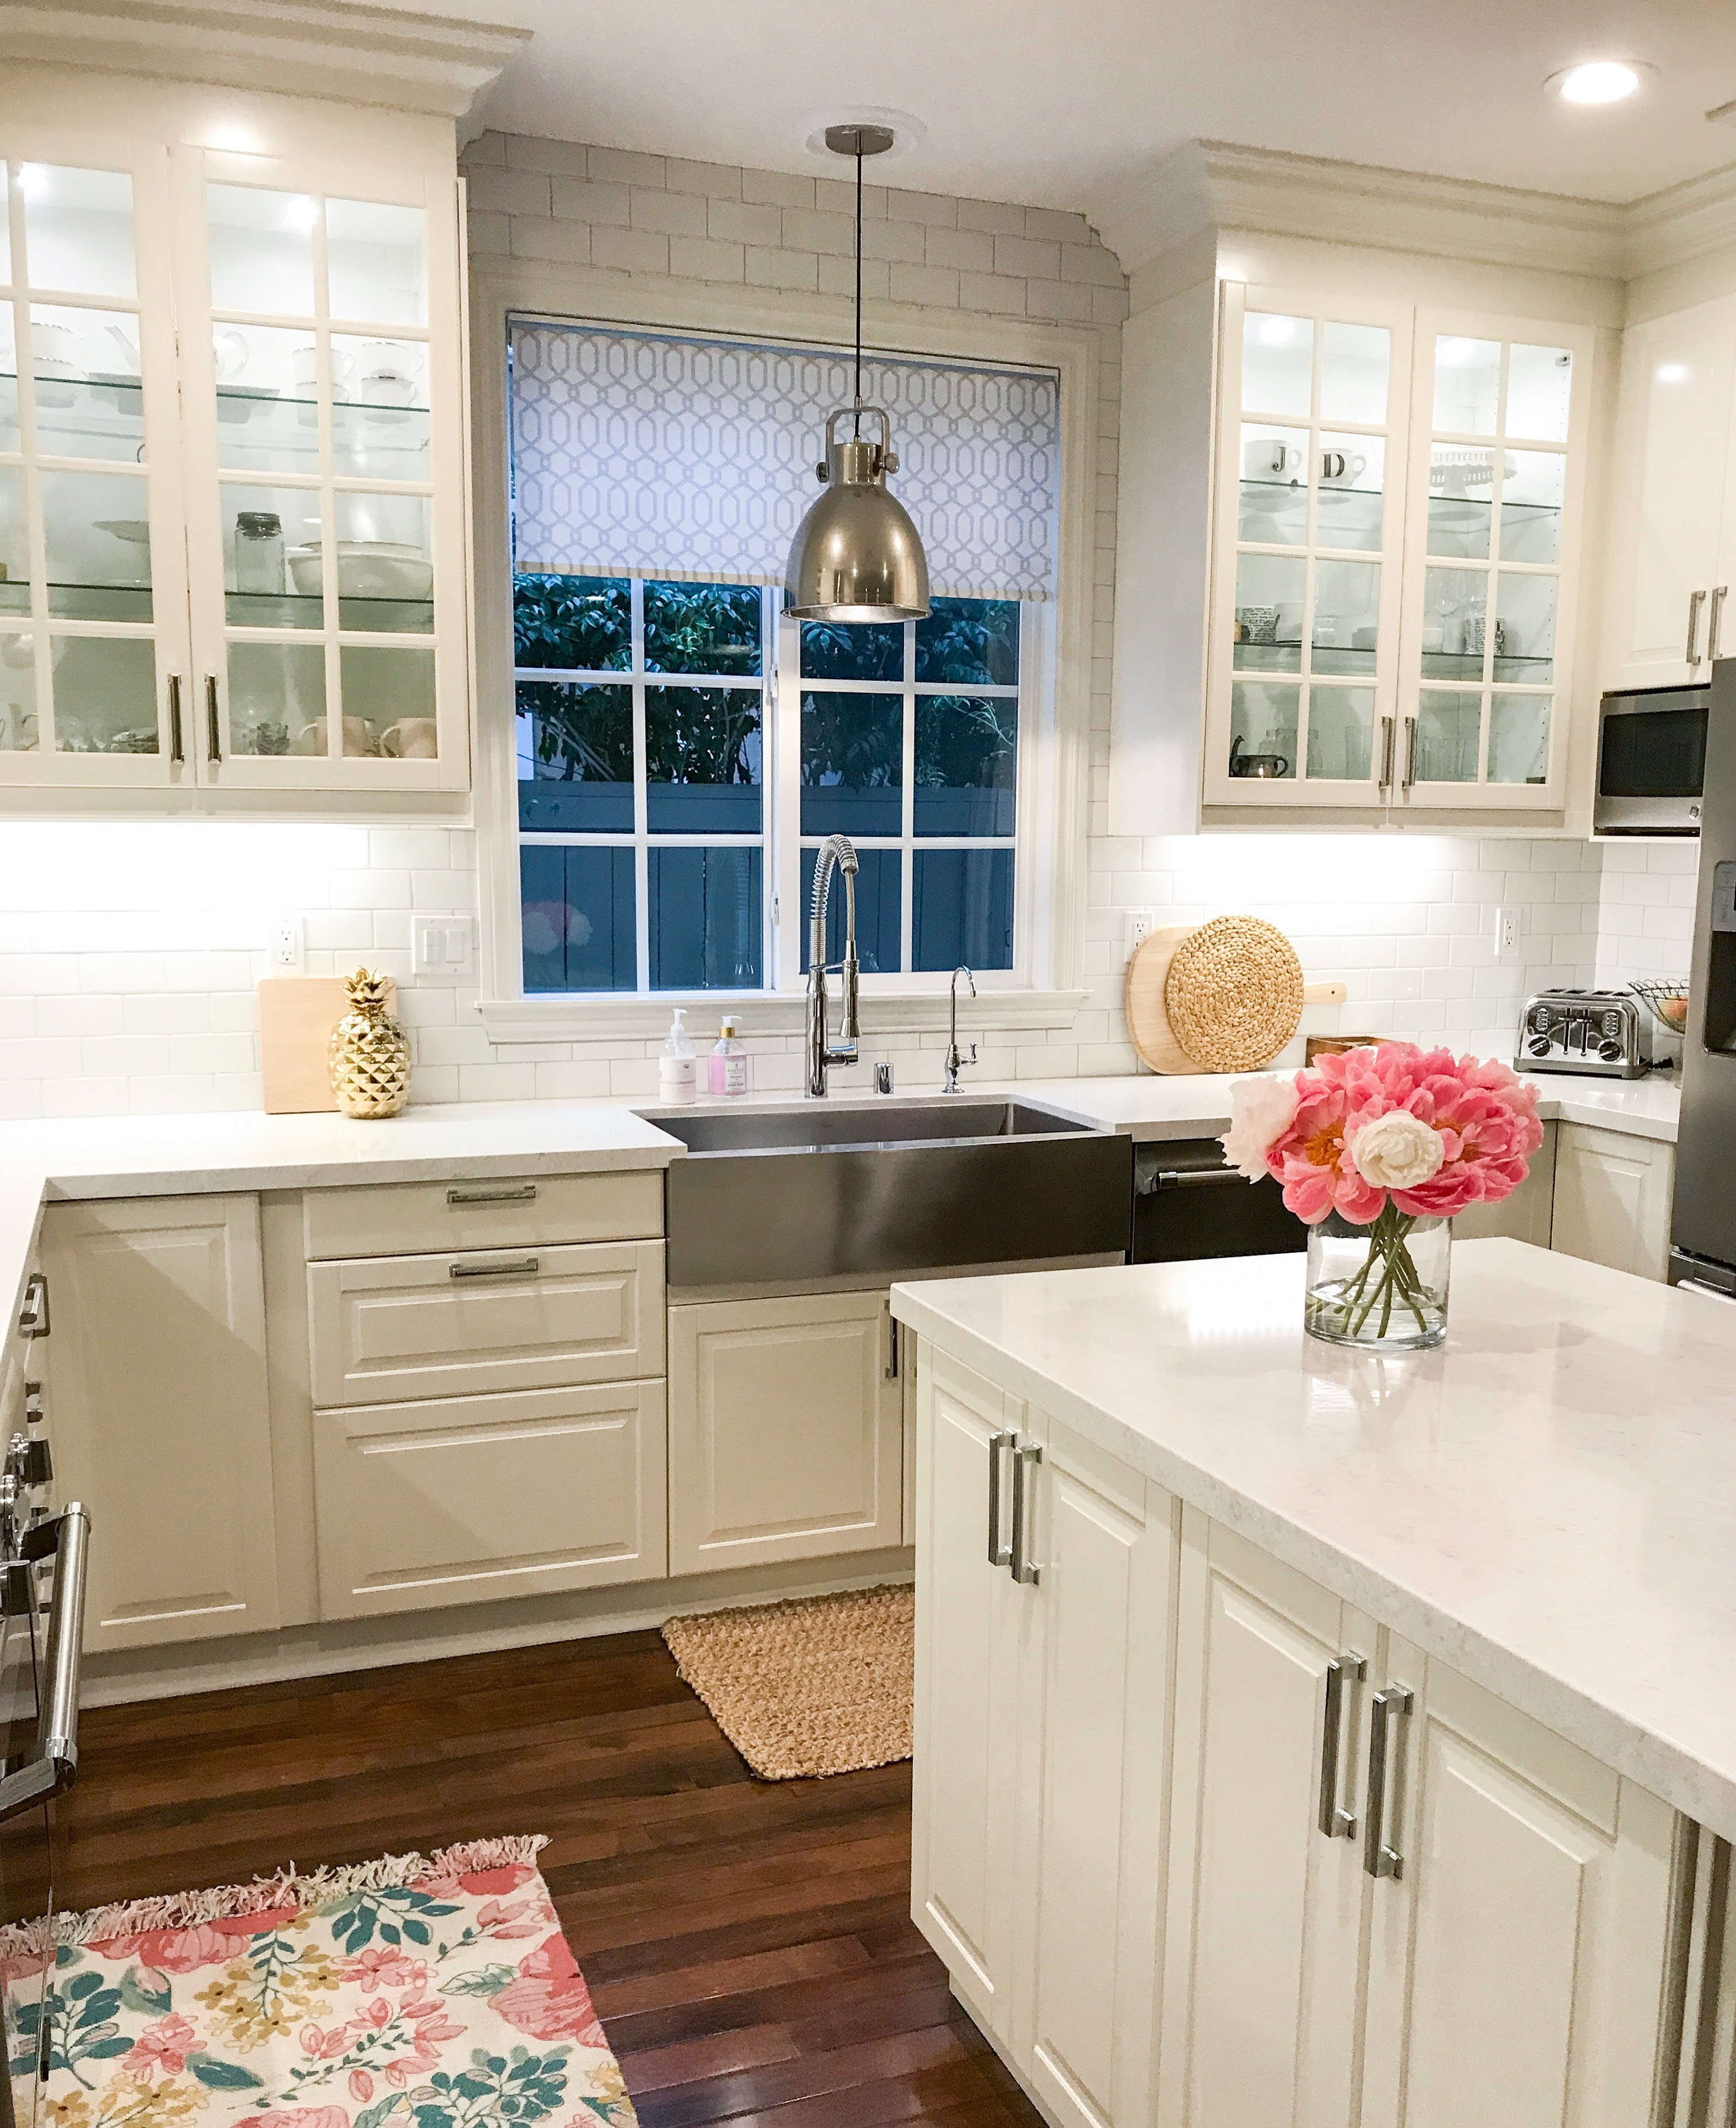 How to Customize Your IKEA Kitchen: 10 Tips to Make it ...